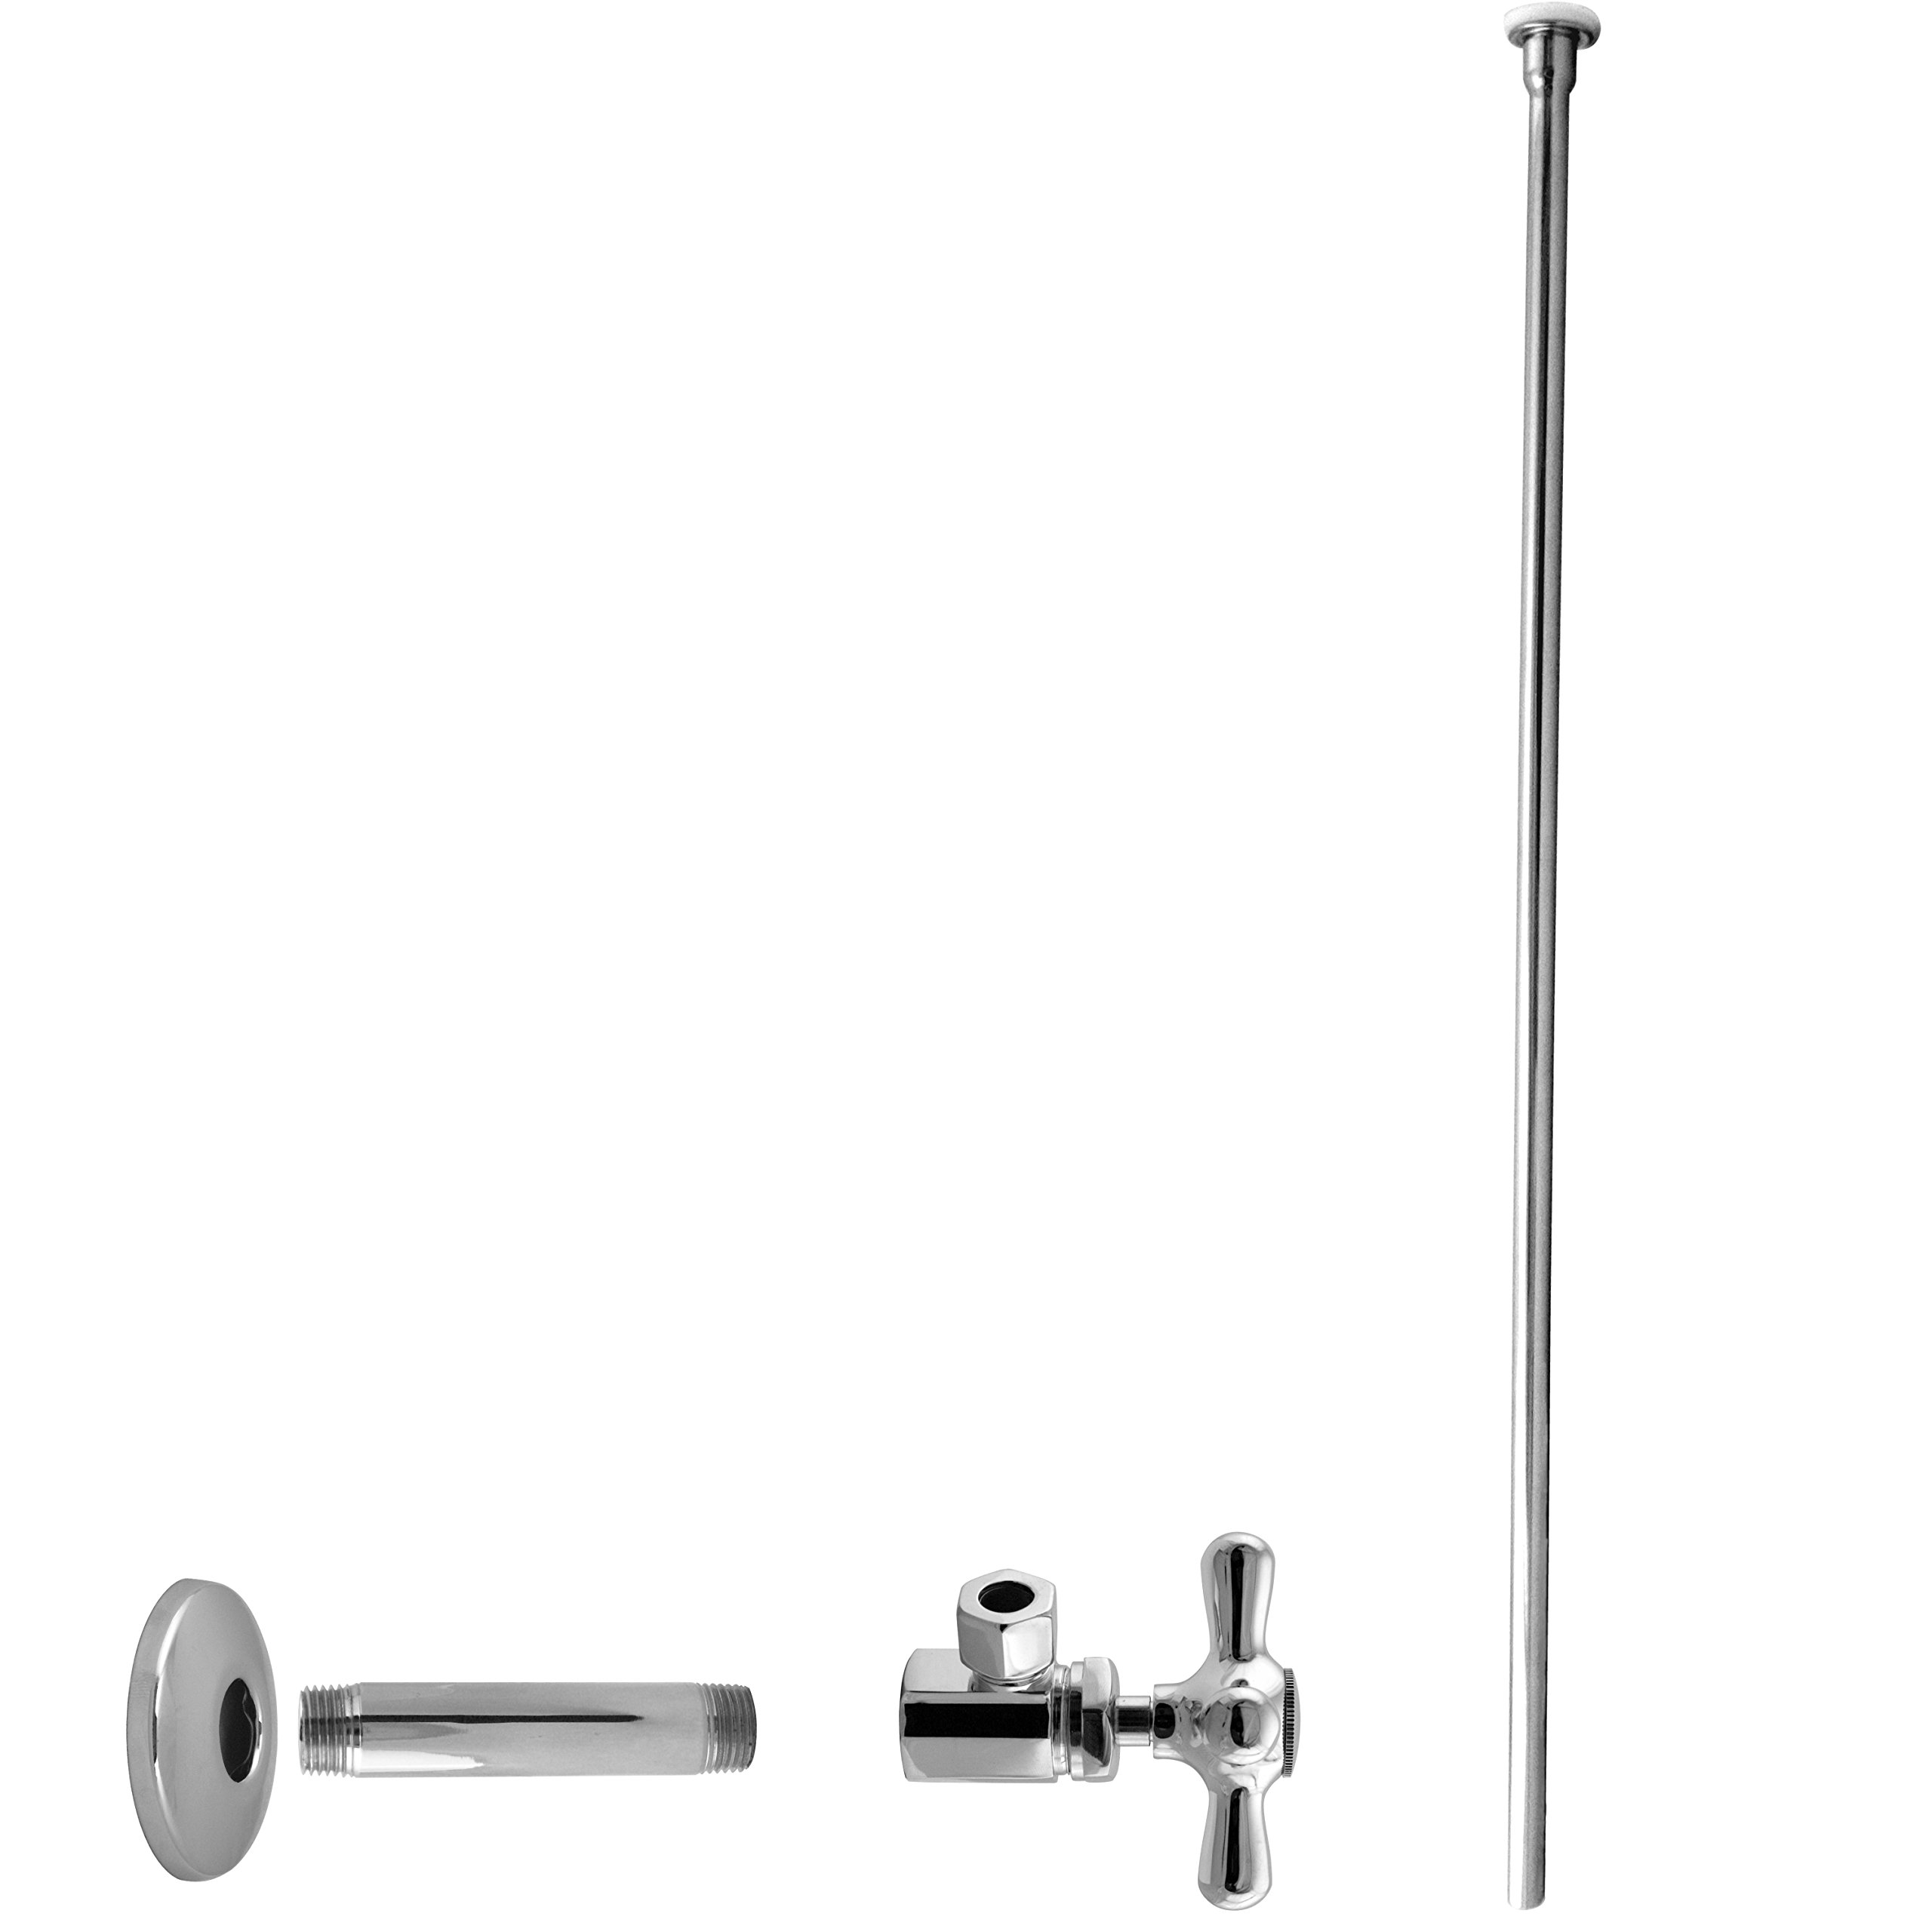 Westbrass Flat Head Toilet Kit with Cross Handles, 1/2'' IPS x 3/8'' OD x 20'', Polished Chrome, D103KFHX-26 by Westbrass